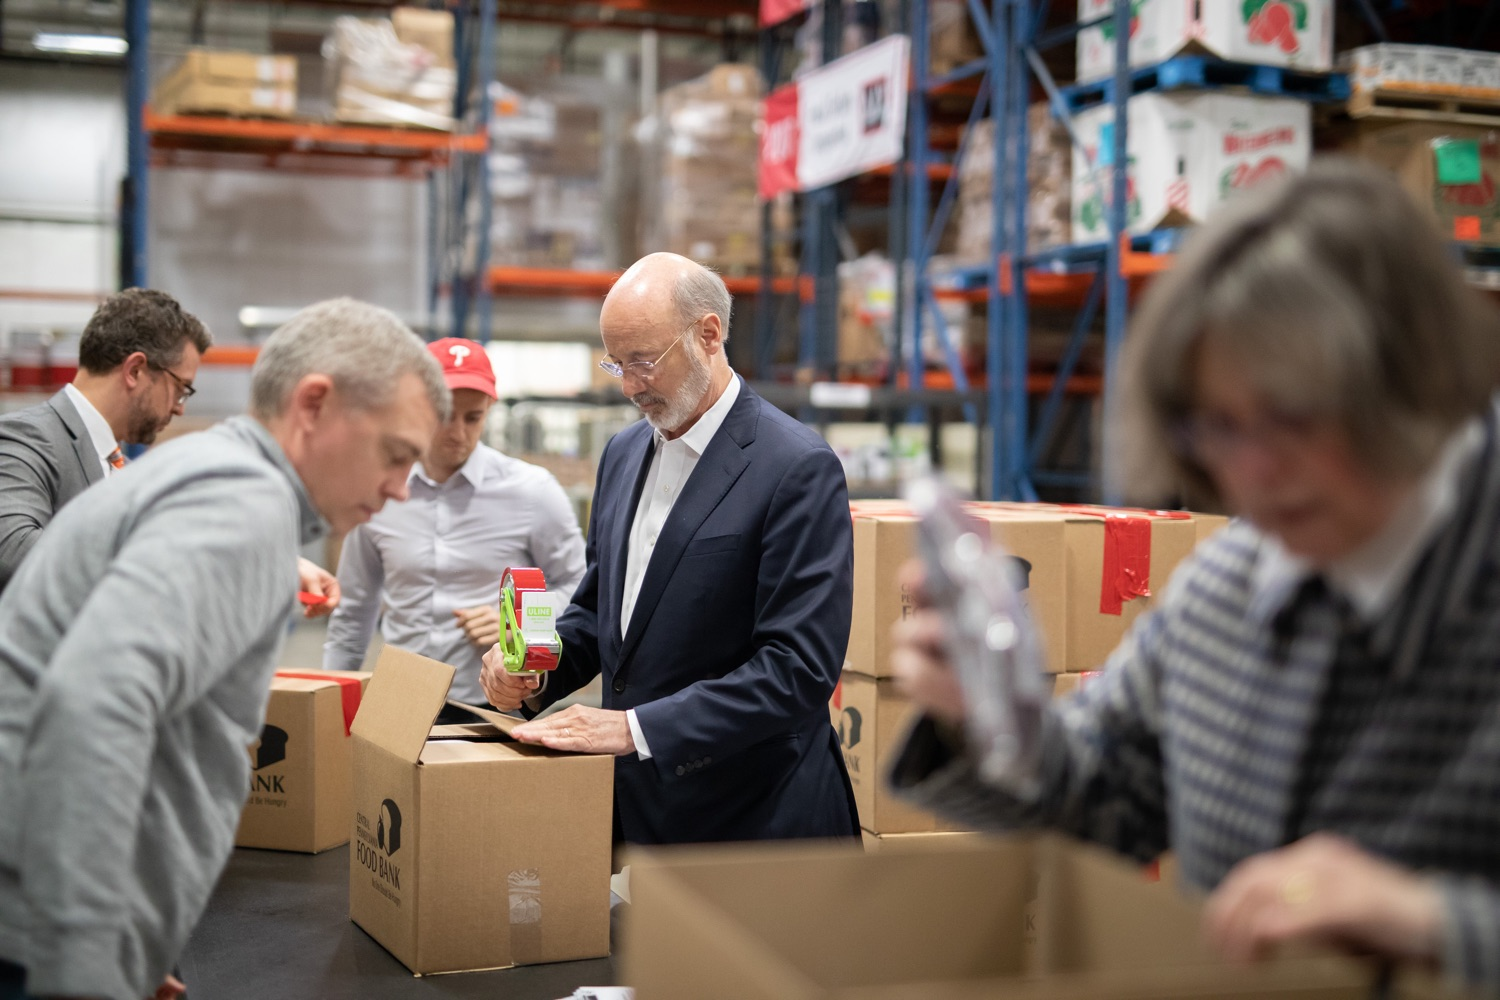 "<a href=""https://filesource.wostreaming.net/commonwealthofpa/photo/17632_gov_foodbank_volunteering_dz_007.jpg"" target=""_blank"">⇣ Download Photo<br></a>Governor Tom Wolf loading boxes of food at the Central Pennsylvania Food Bank.  The governor and first lady visit the Central Pennsylvania Food Bank in Harrisburg to participate in a volunteer project, packing boxes of food for veterans and their families. Ahead of Thanksgiving and the holiday season, Governor Tom Wolf and First Lady Frances Wolf are reminding Pennsylvanians of the importance of helping each other. Harrisburg, PA  Tuesday November 26, 2019"